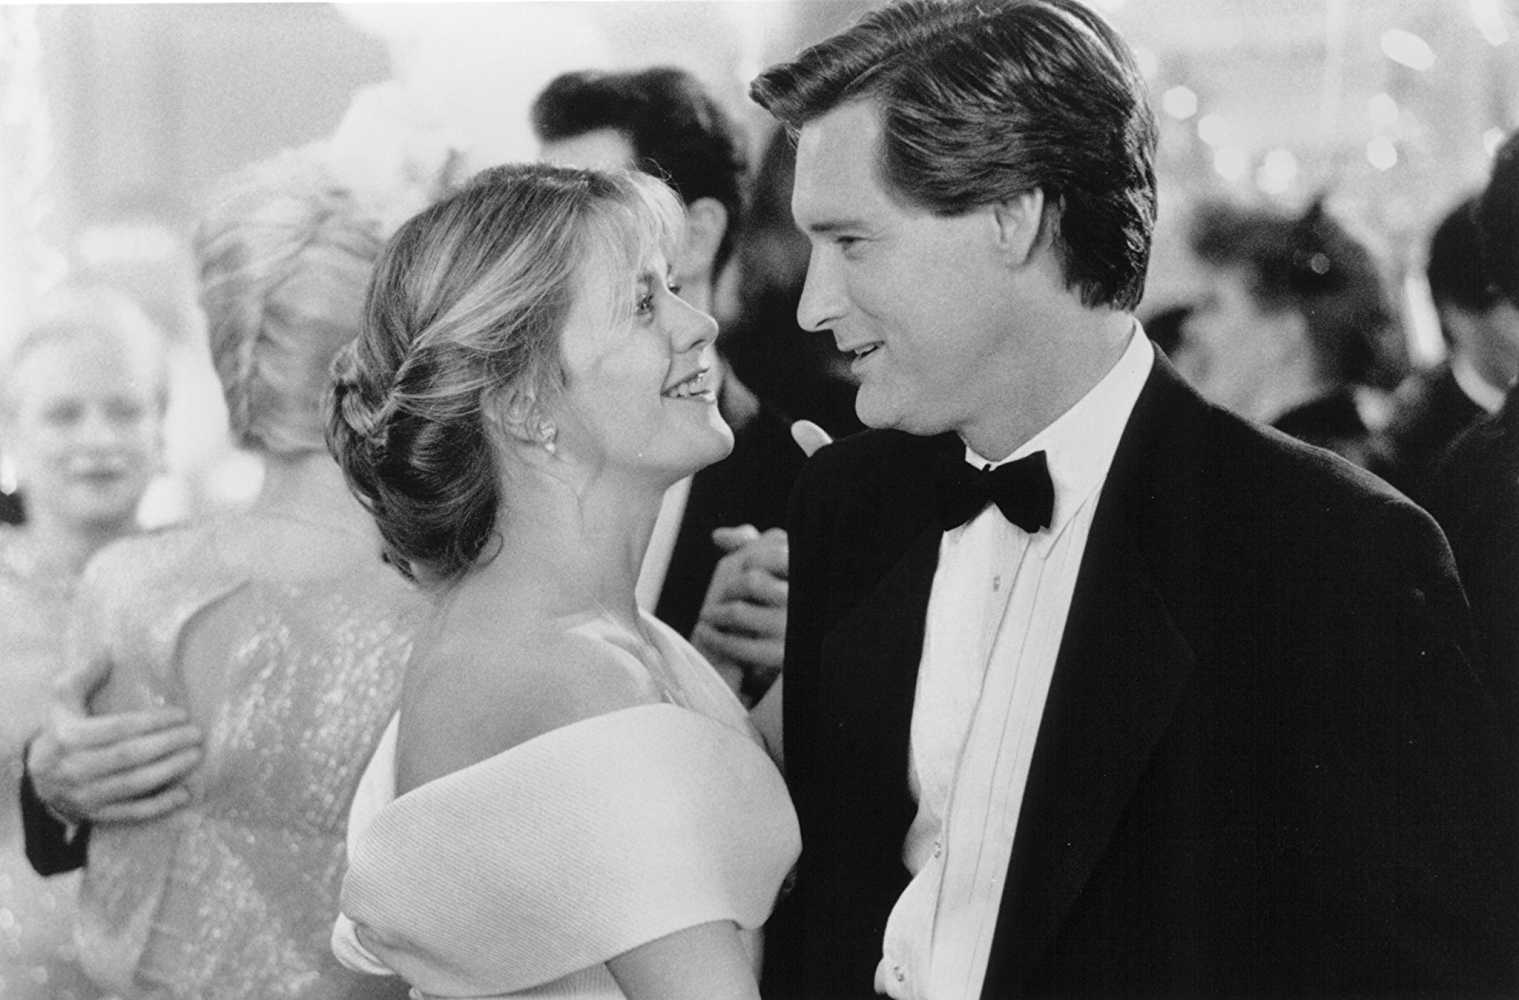 Bill Pullman as Meg Ryan's husband in 'Sleepless in Seattle'. (IMDb)